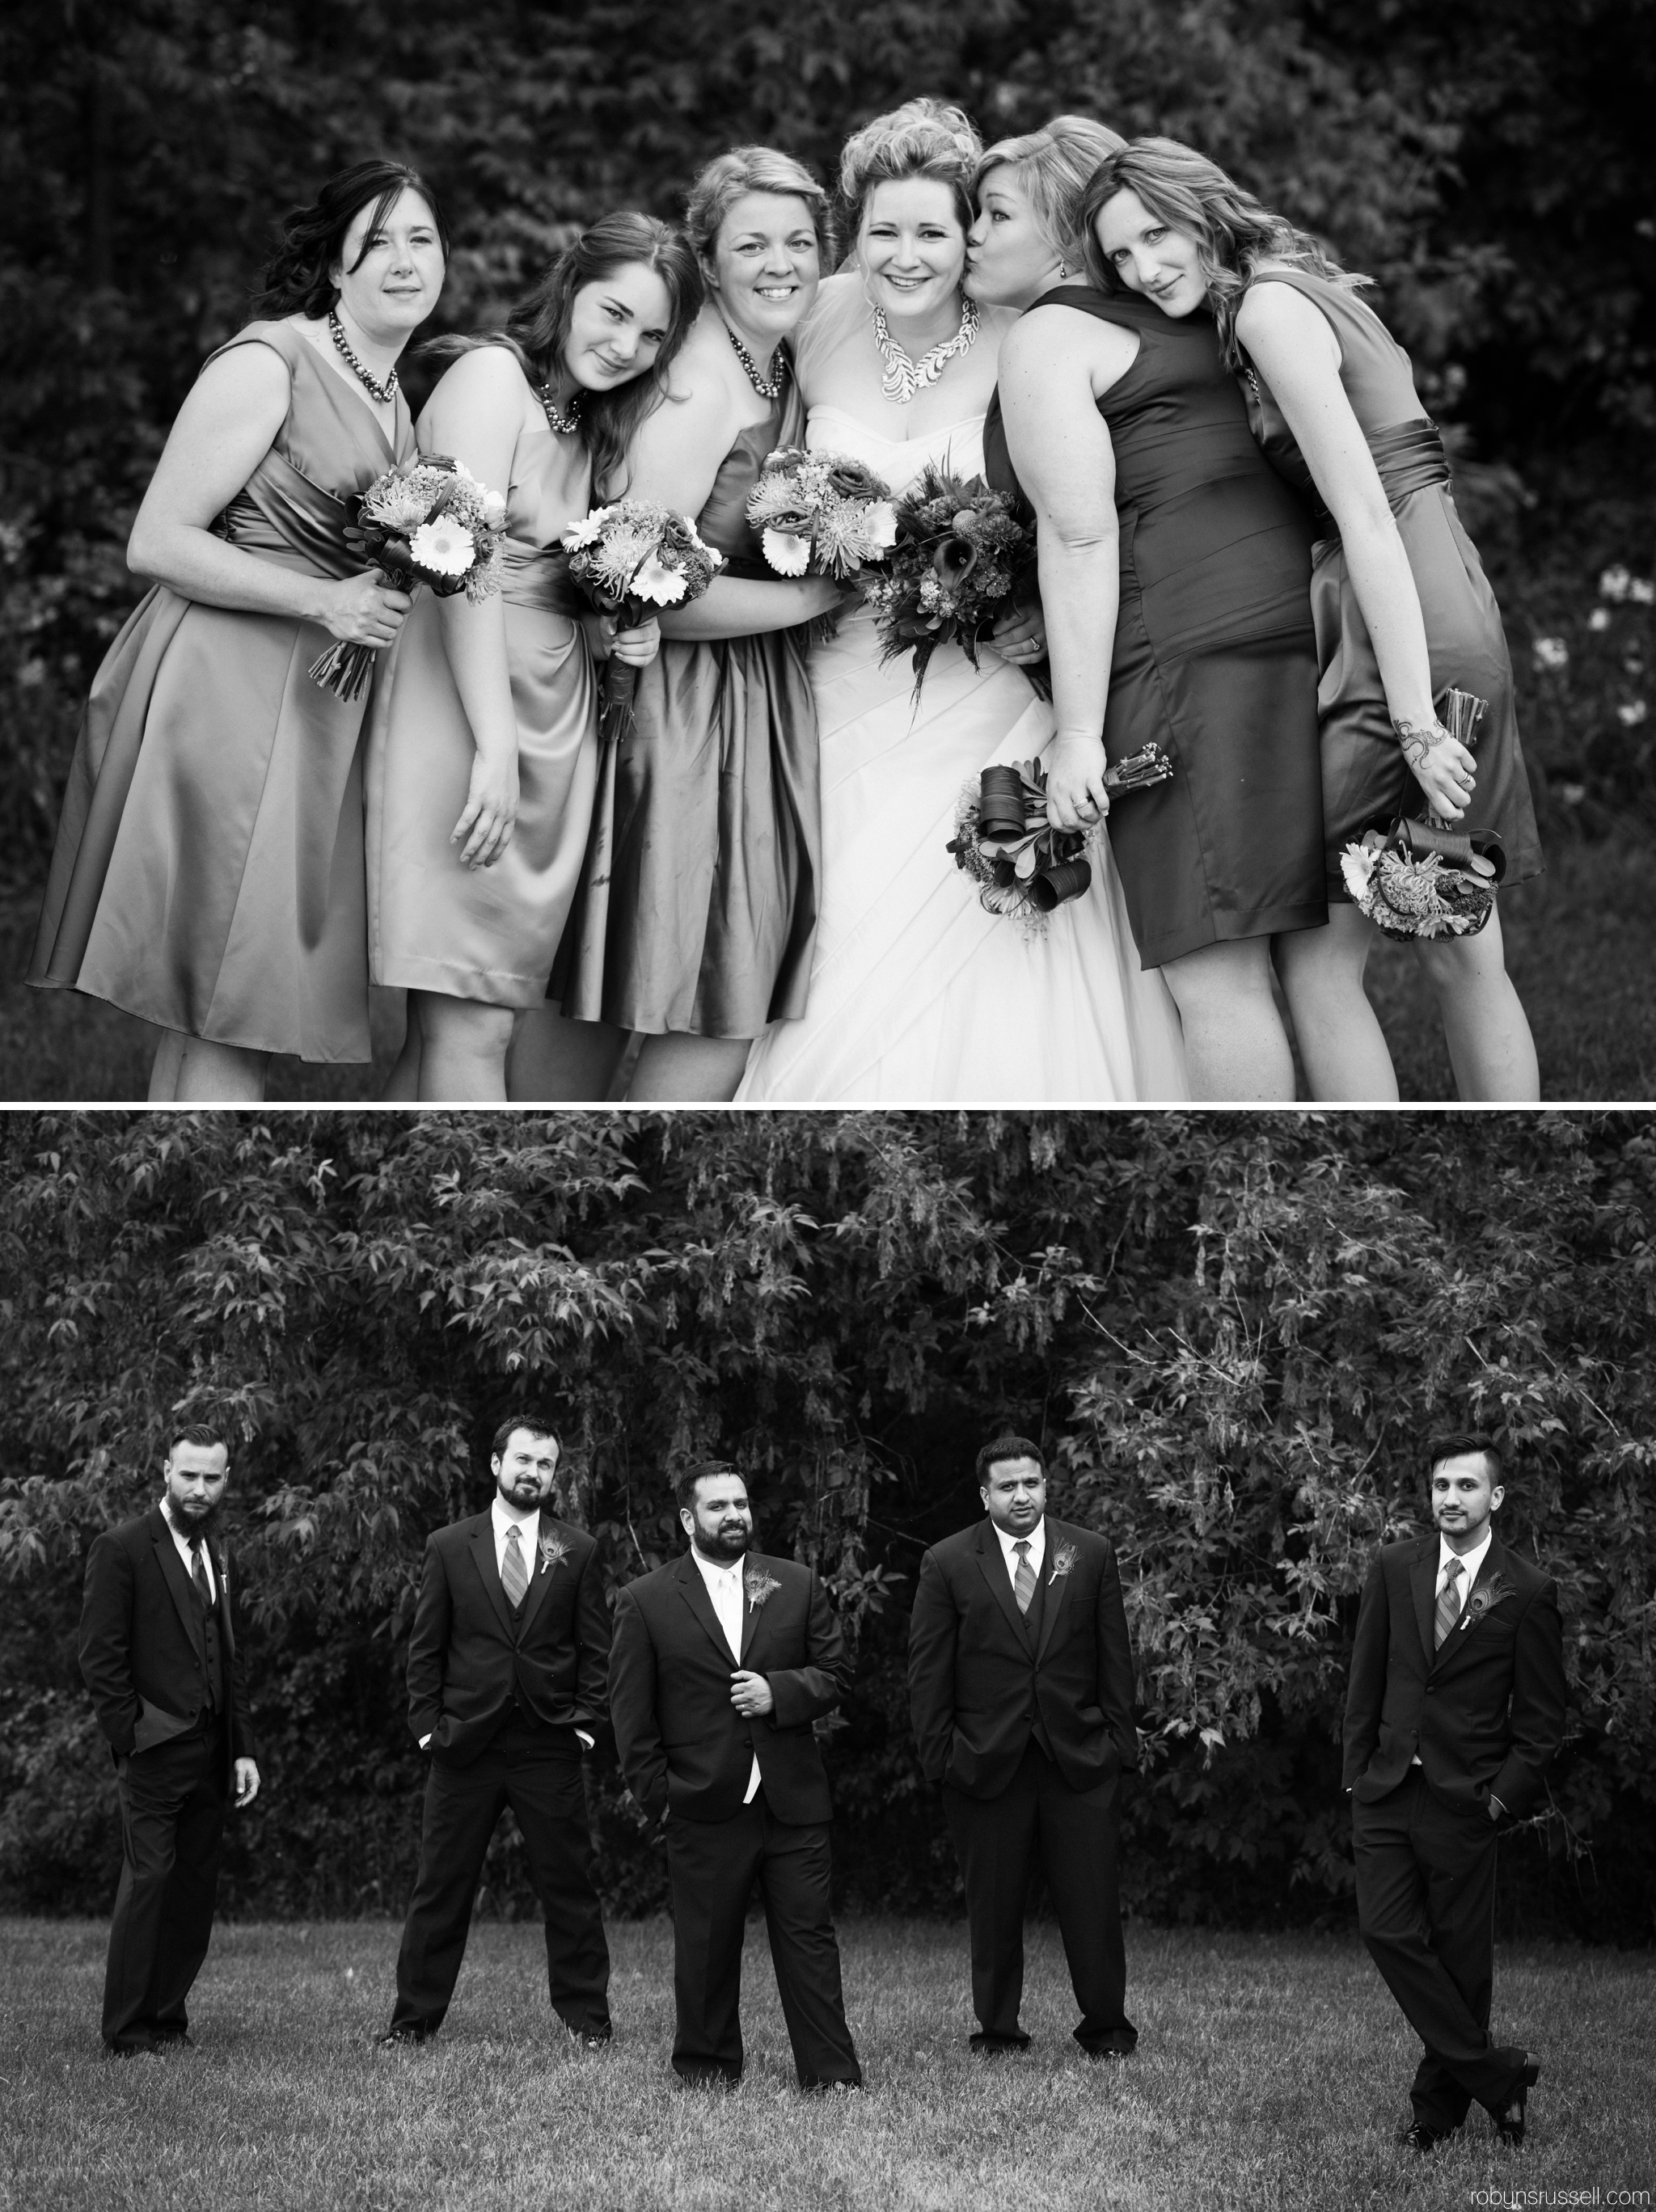 25-black-and-white-bridal-party-portraits-fisher-mill.jpg